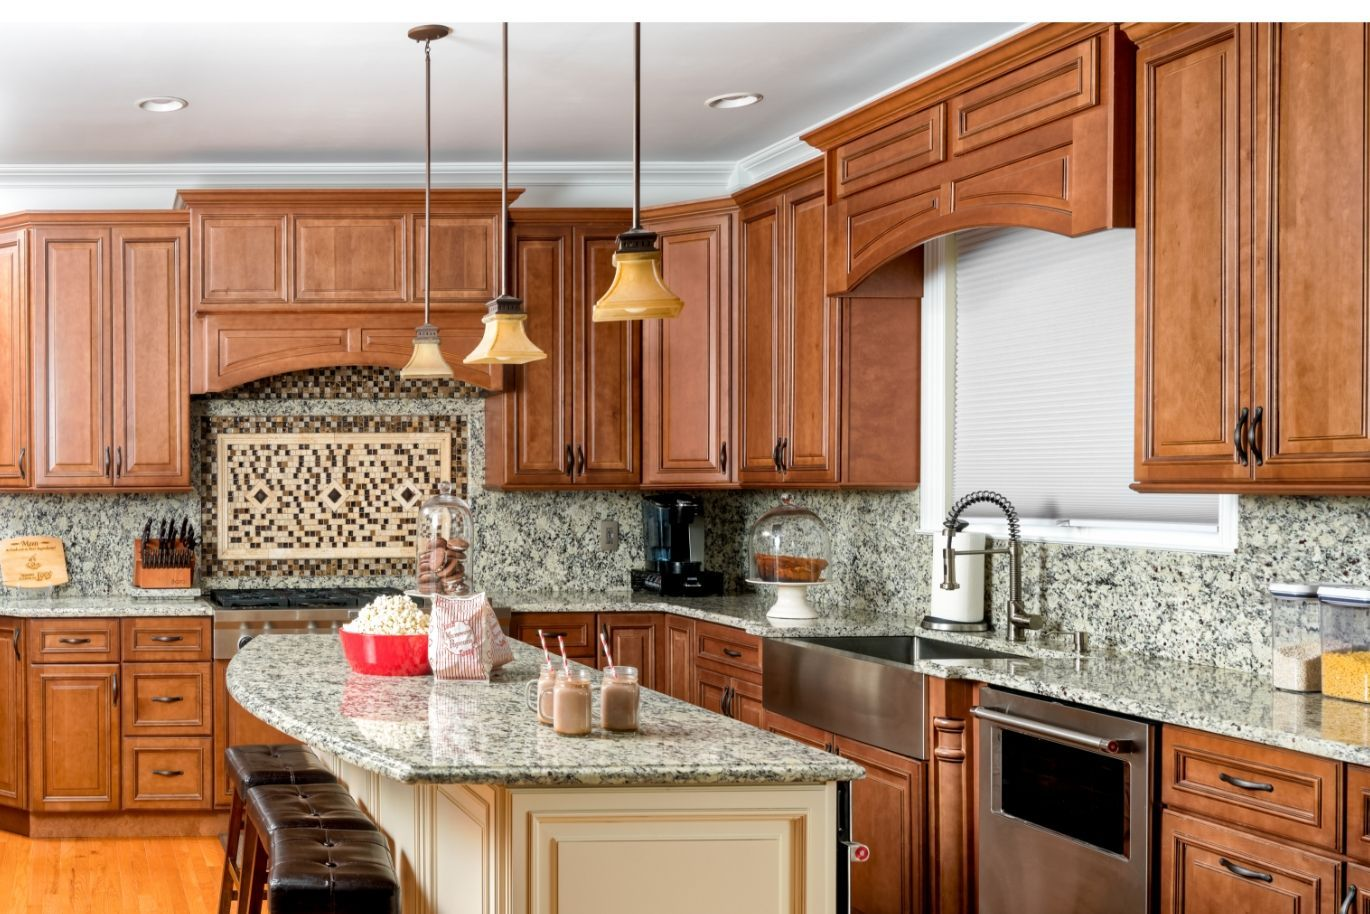 Kitchen Cabinets For Sale Affordable And Stylish In Queens Traditional Kitchen Cabinets Kitchen Door Designs Kitchen Design